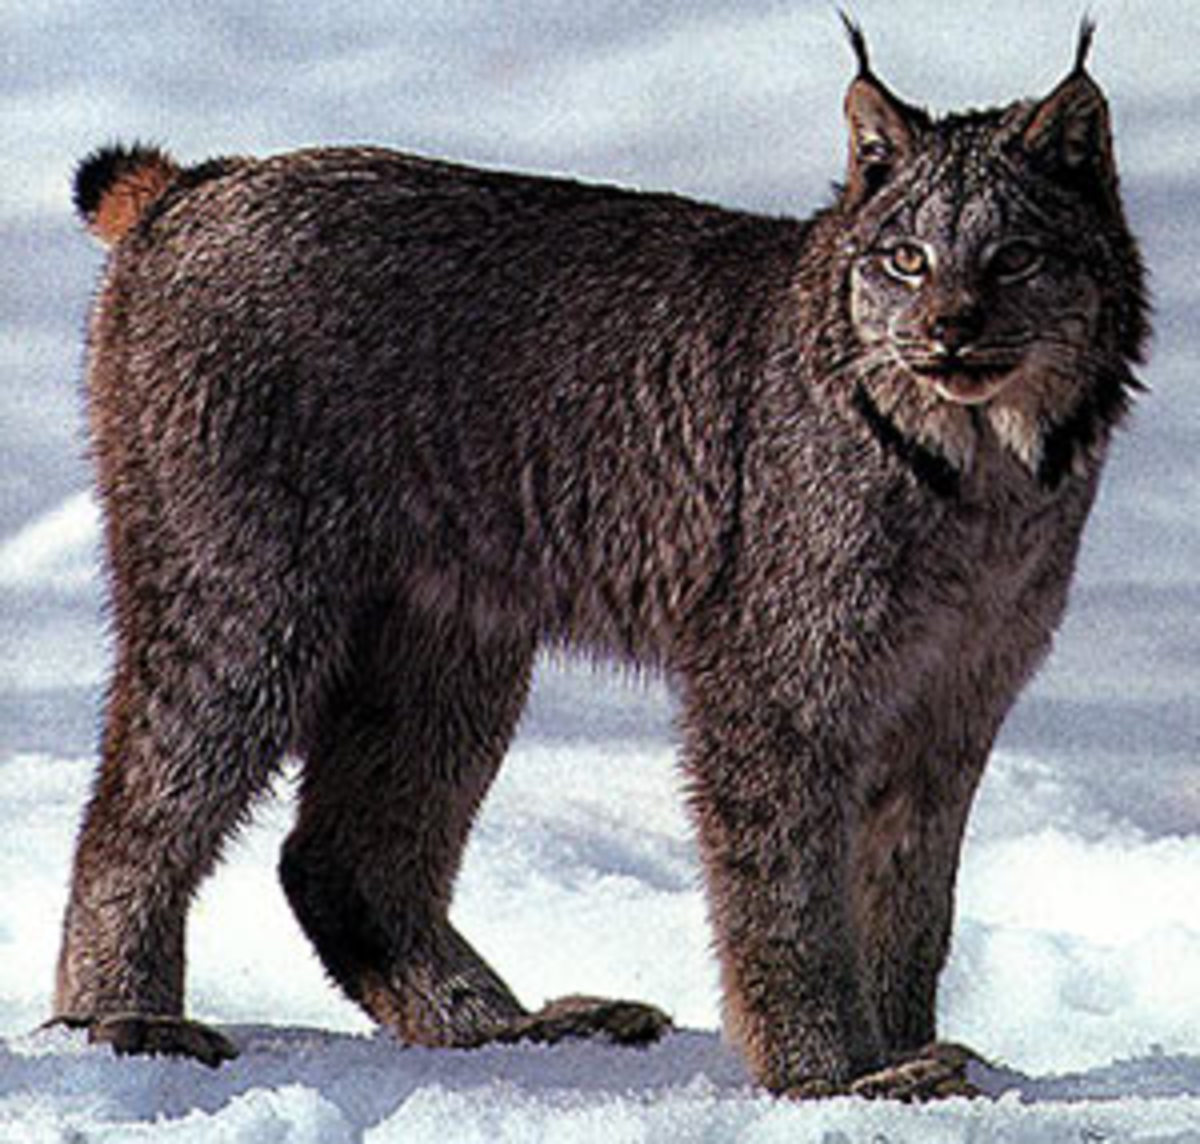 The darker coloring makes this Canadian Lynx look truly badass!